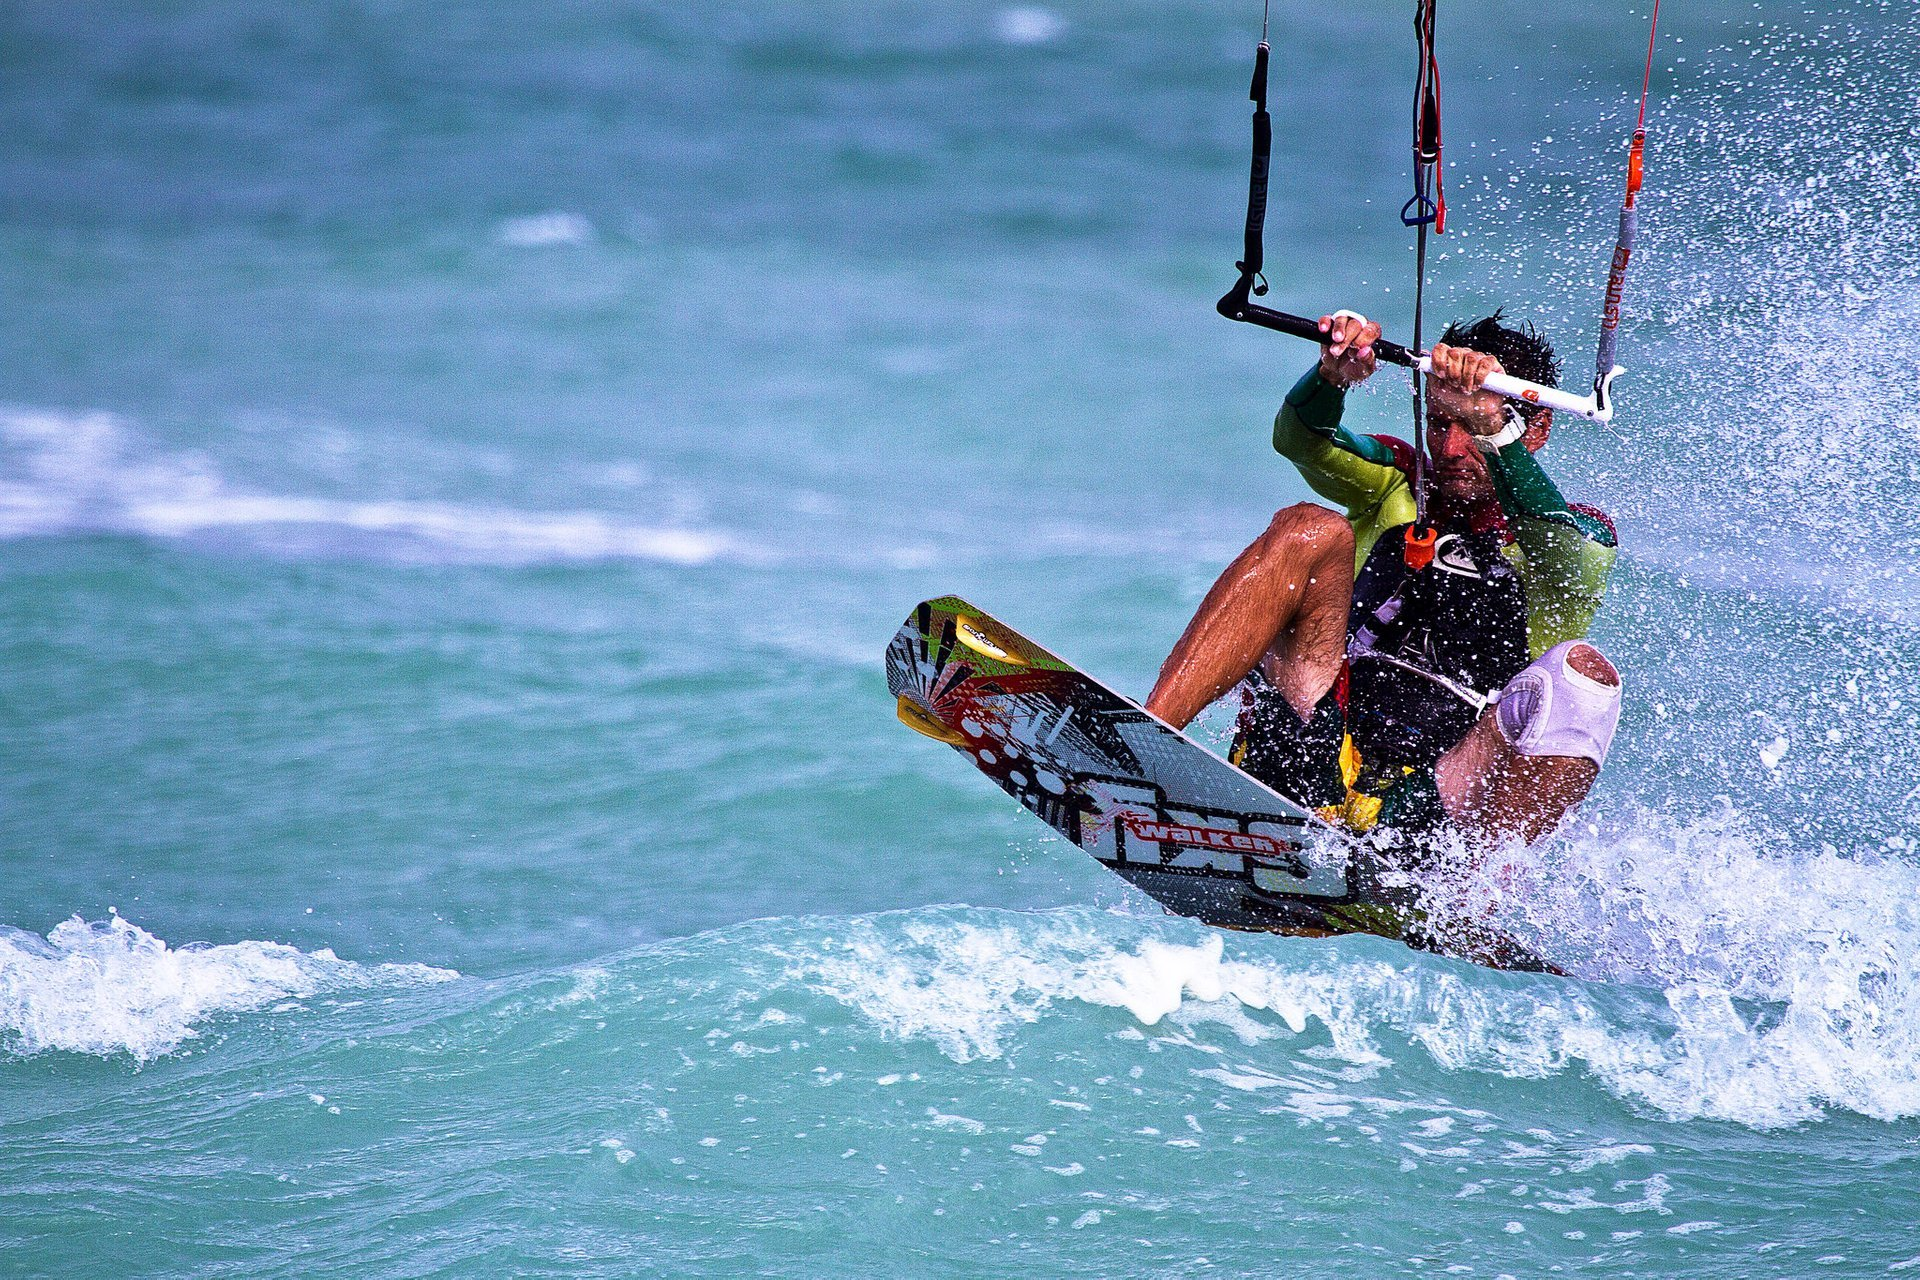 Kiteboarding and Windsurfing in Florida 2020 - Best Time